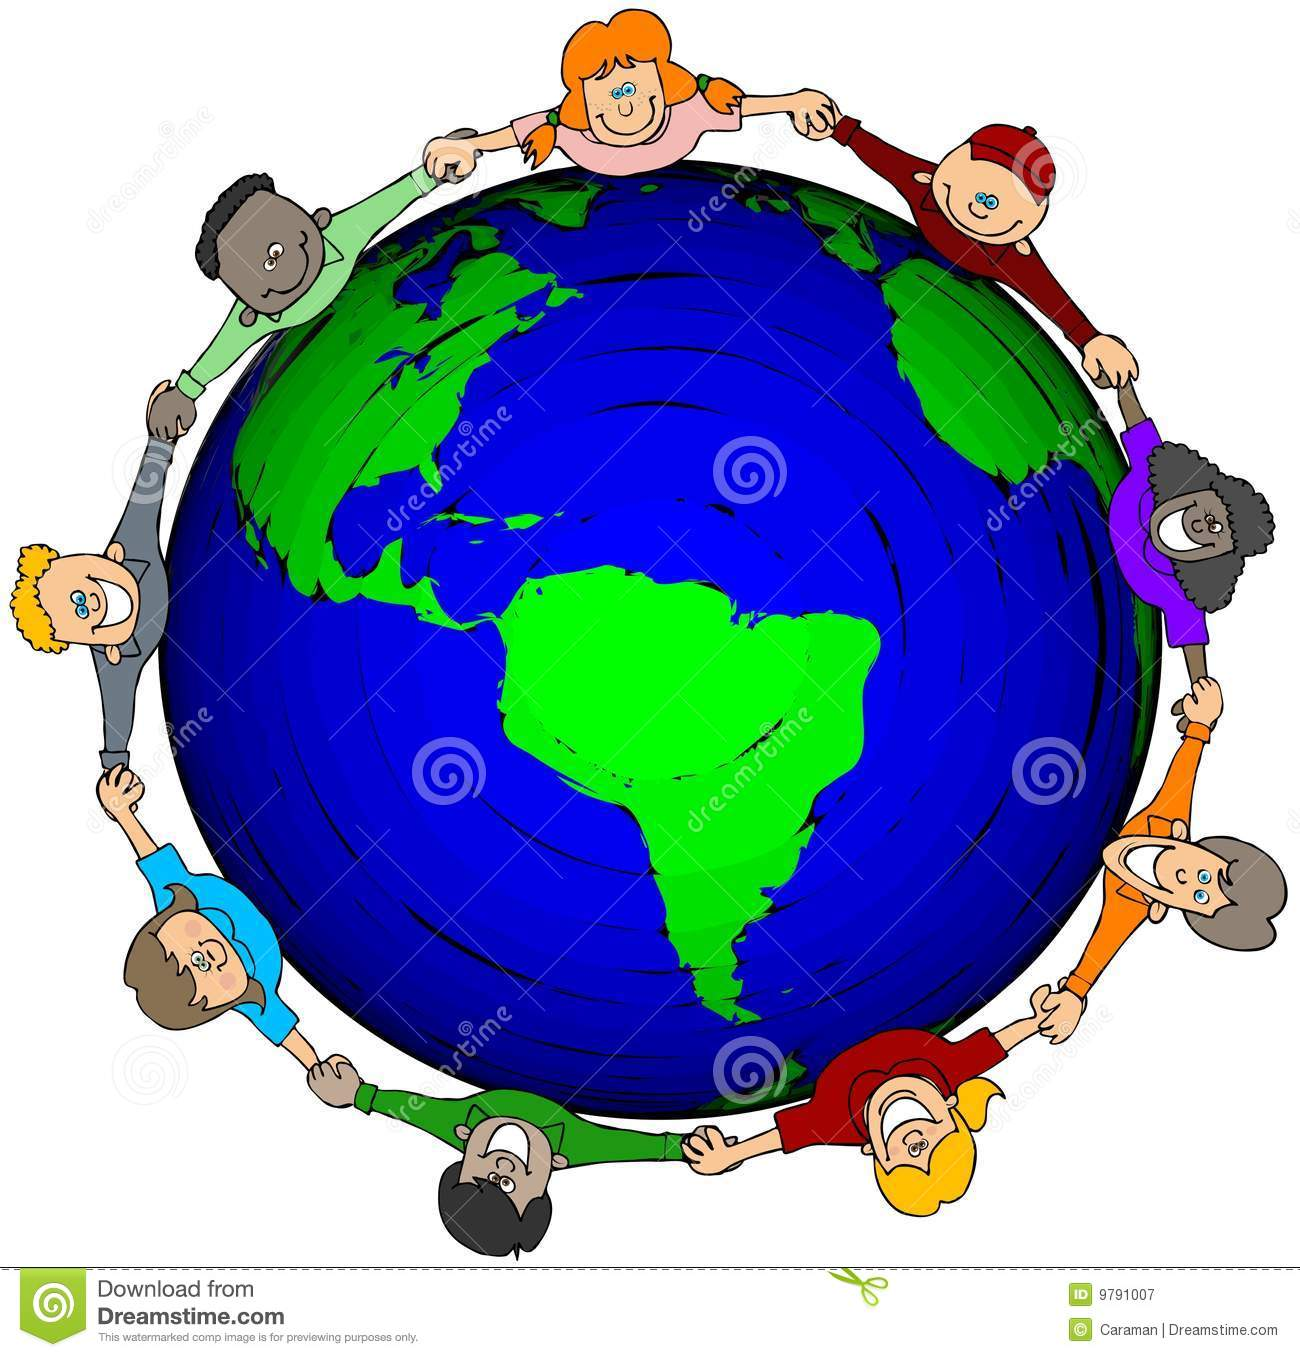 ... nine children holding hands around a large world globe and looking up